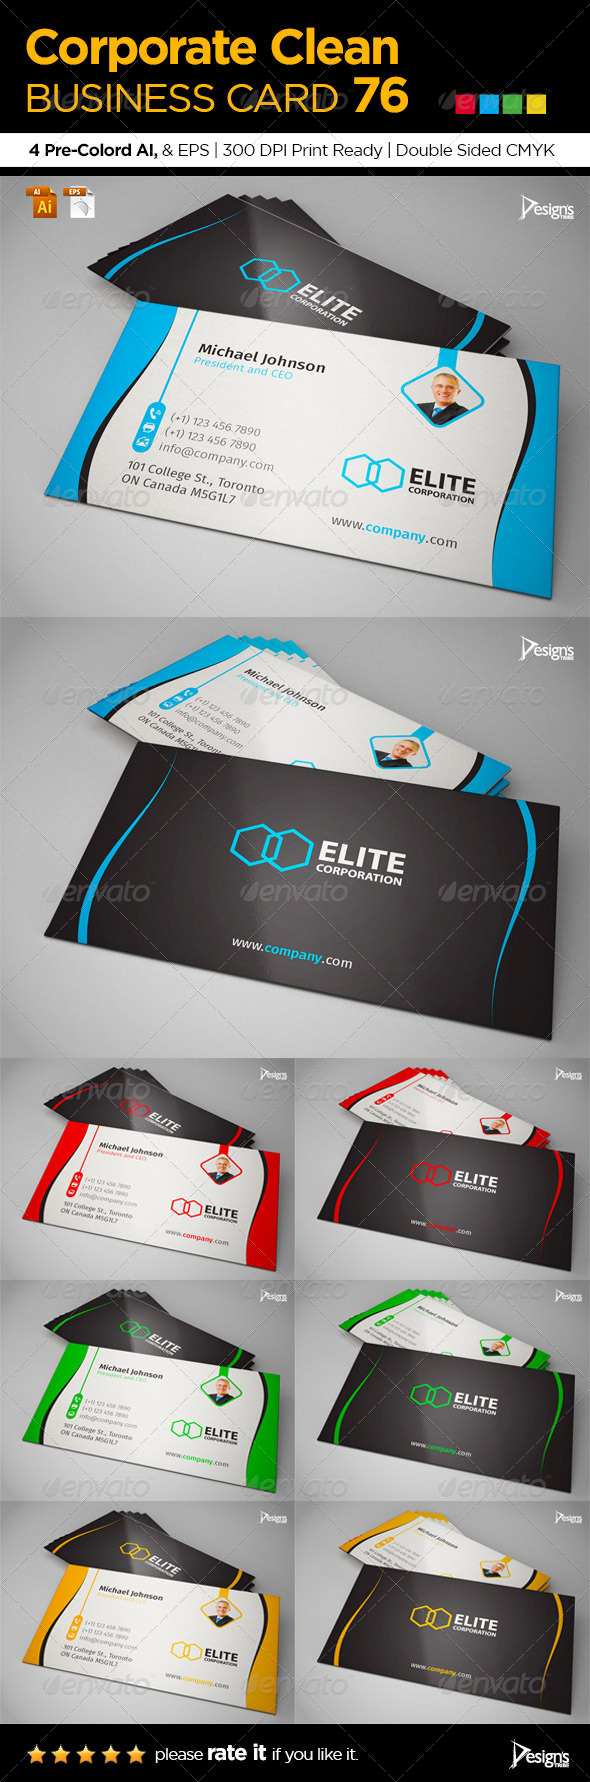 Corporate Clean Business Card 76 - Business Cards Print Templates